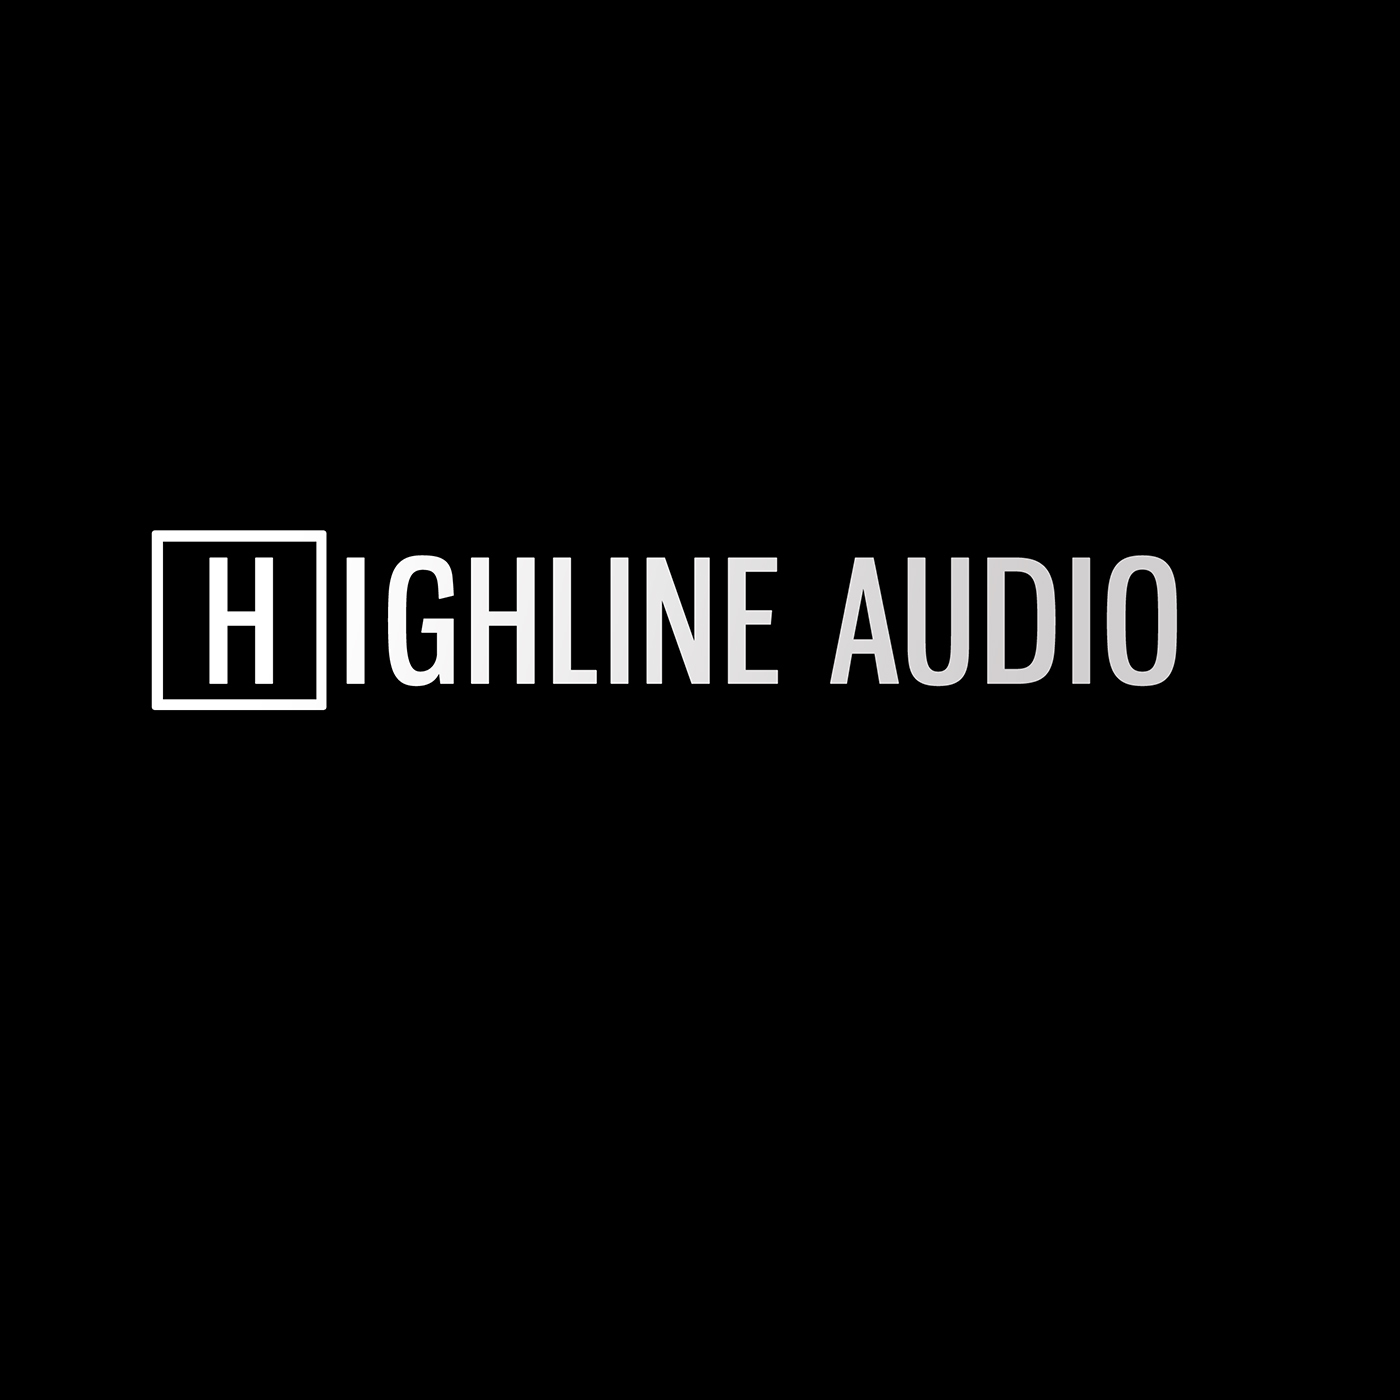 Highline Audio